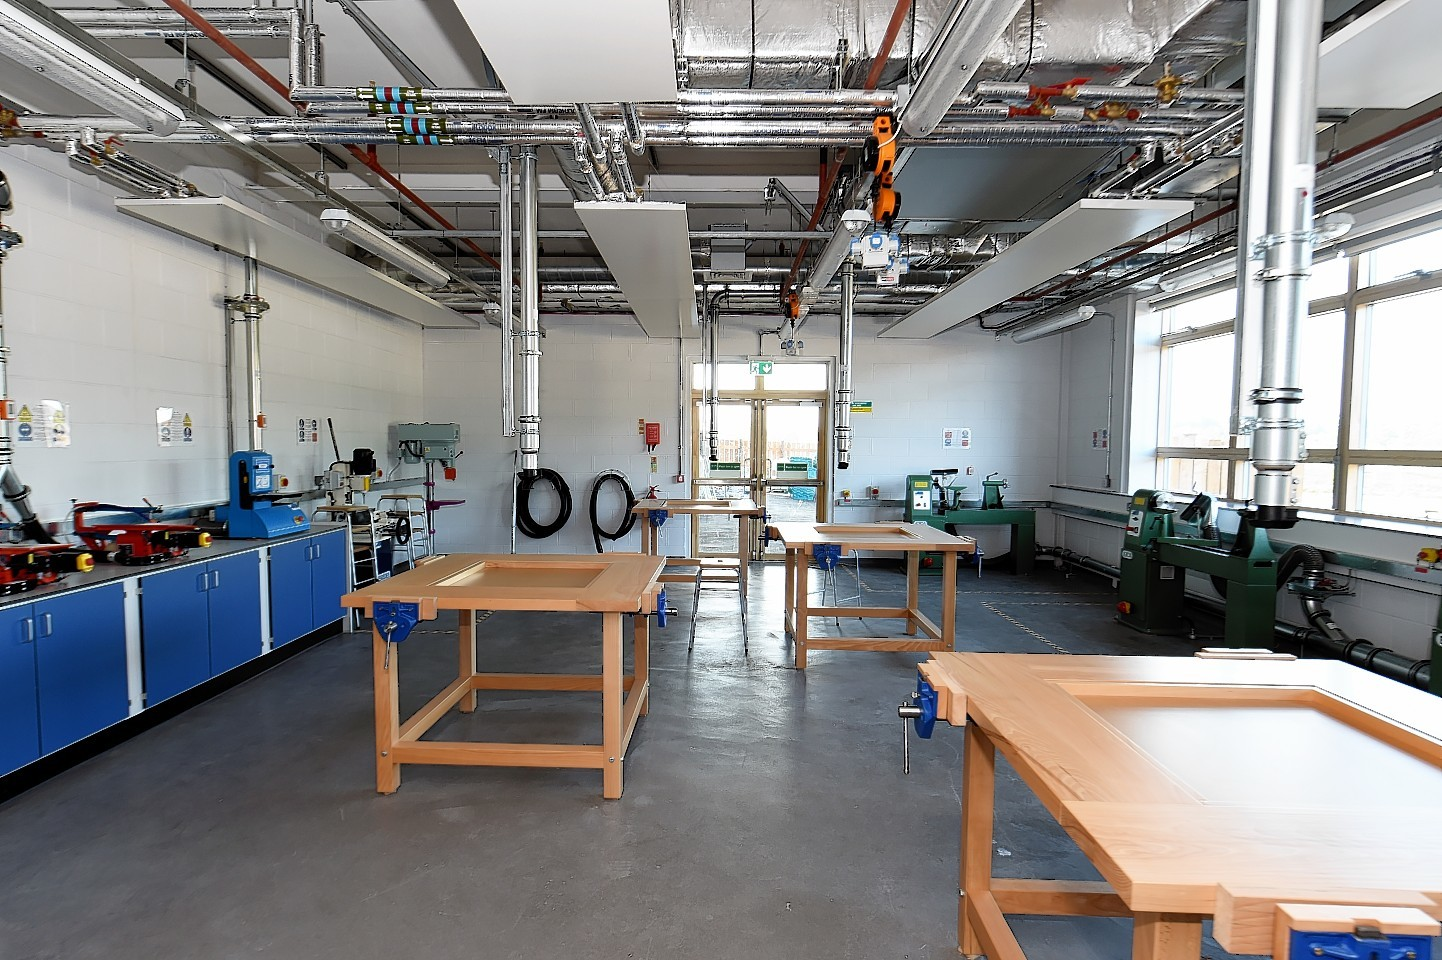 Technical education facilities. Credit: Kevin Emslie.